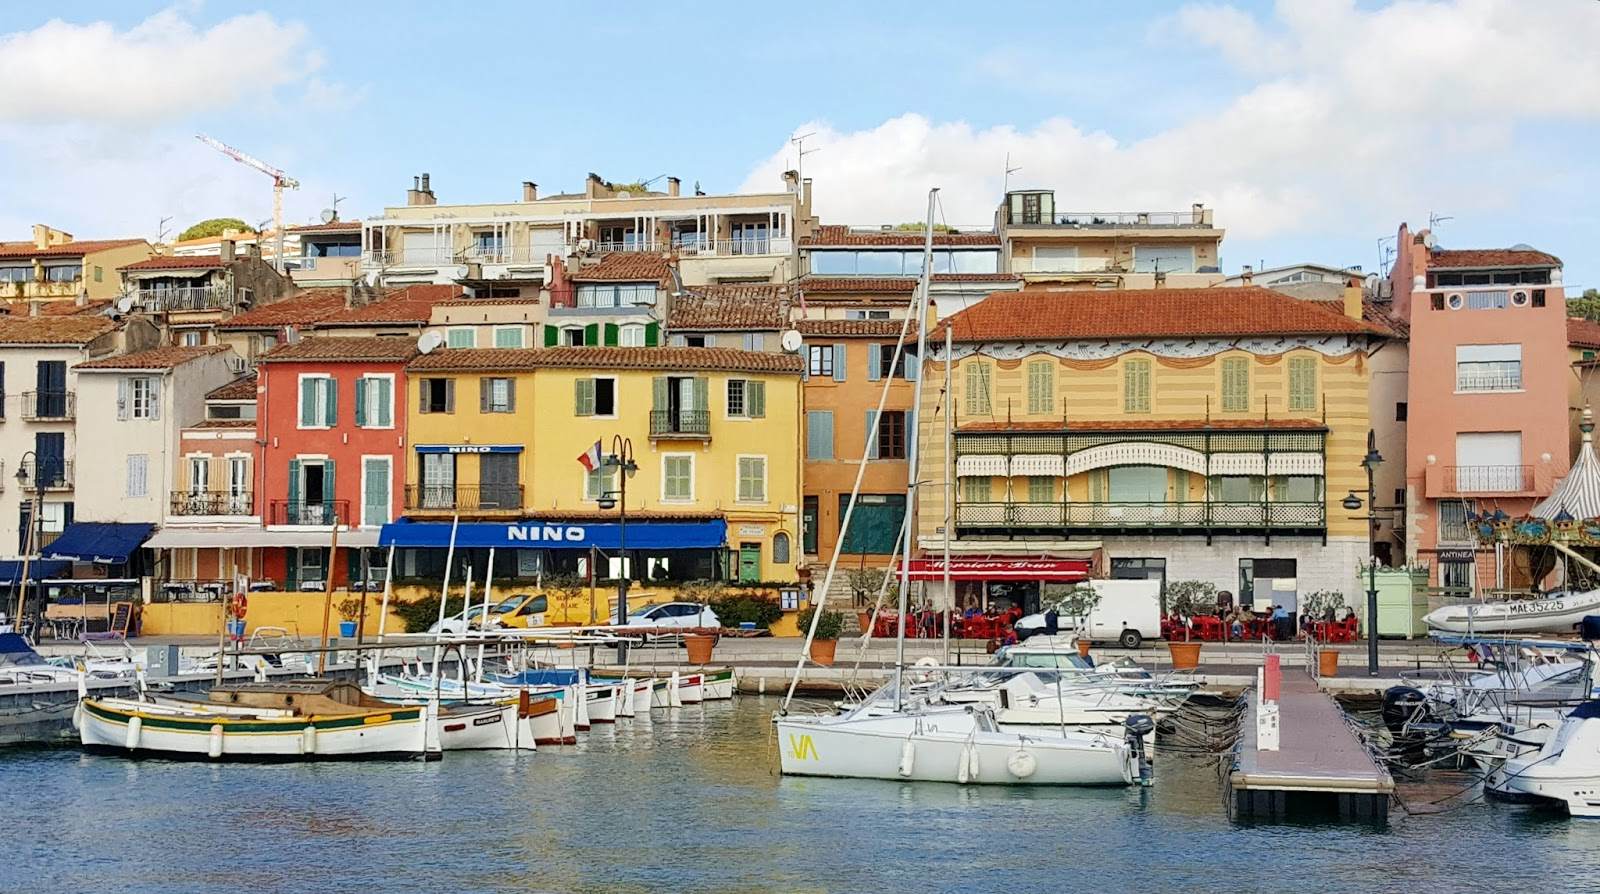 Location Canoe Cassis Our House In Provence A Special Day In Cassis With Friends And